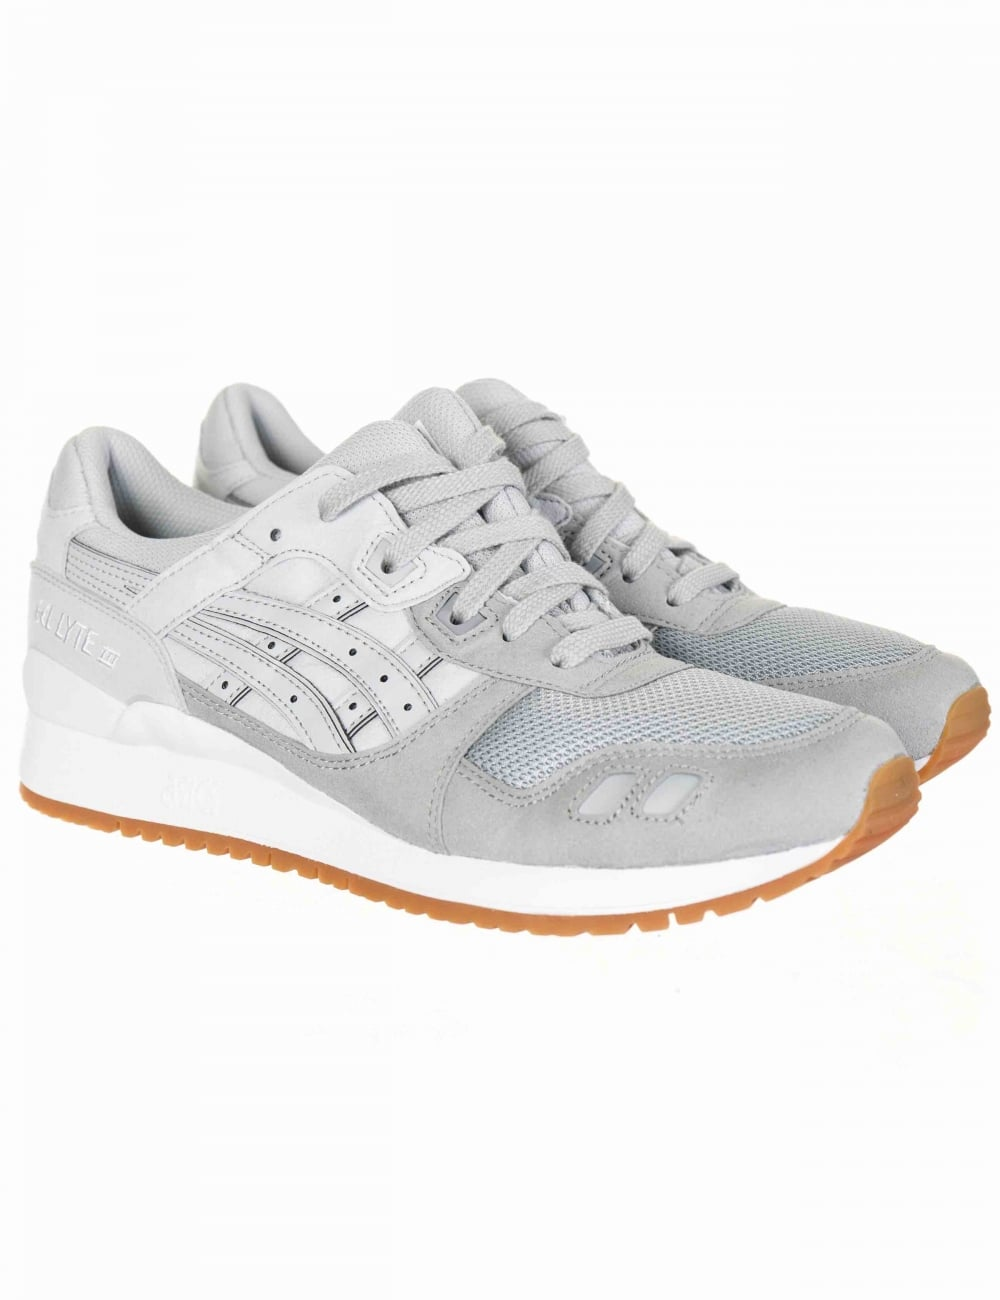 best authentic 61c3d 293b3 Gel Lyte III Trainers - Mid Grey/Glacier Grey